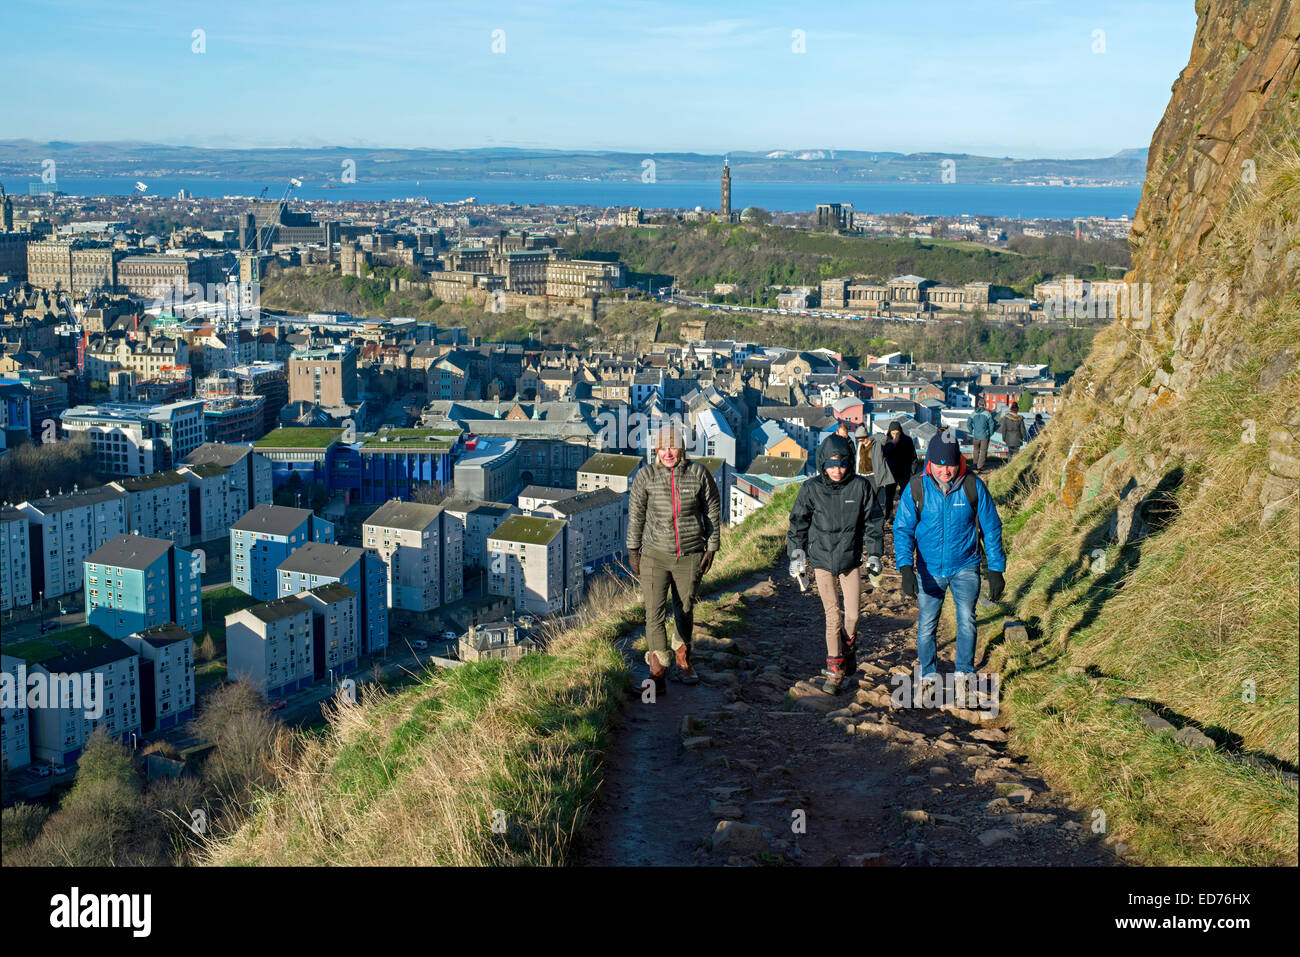 Walkers on the Radical Road beneath Salisbury Crags with the city of Edinburgh in the background on a sunny winter's - Stock Image